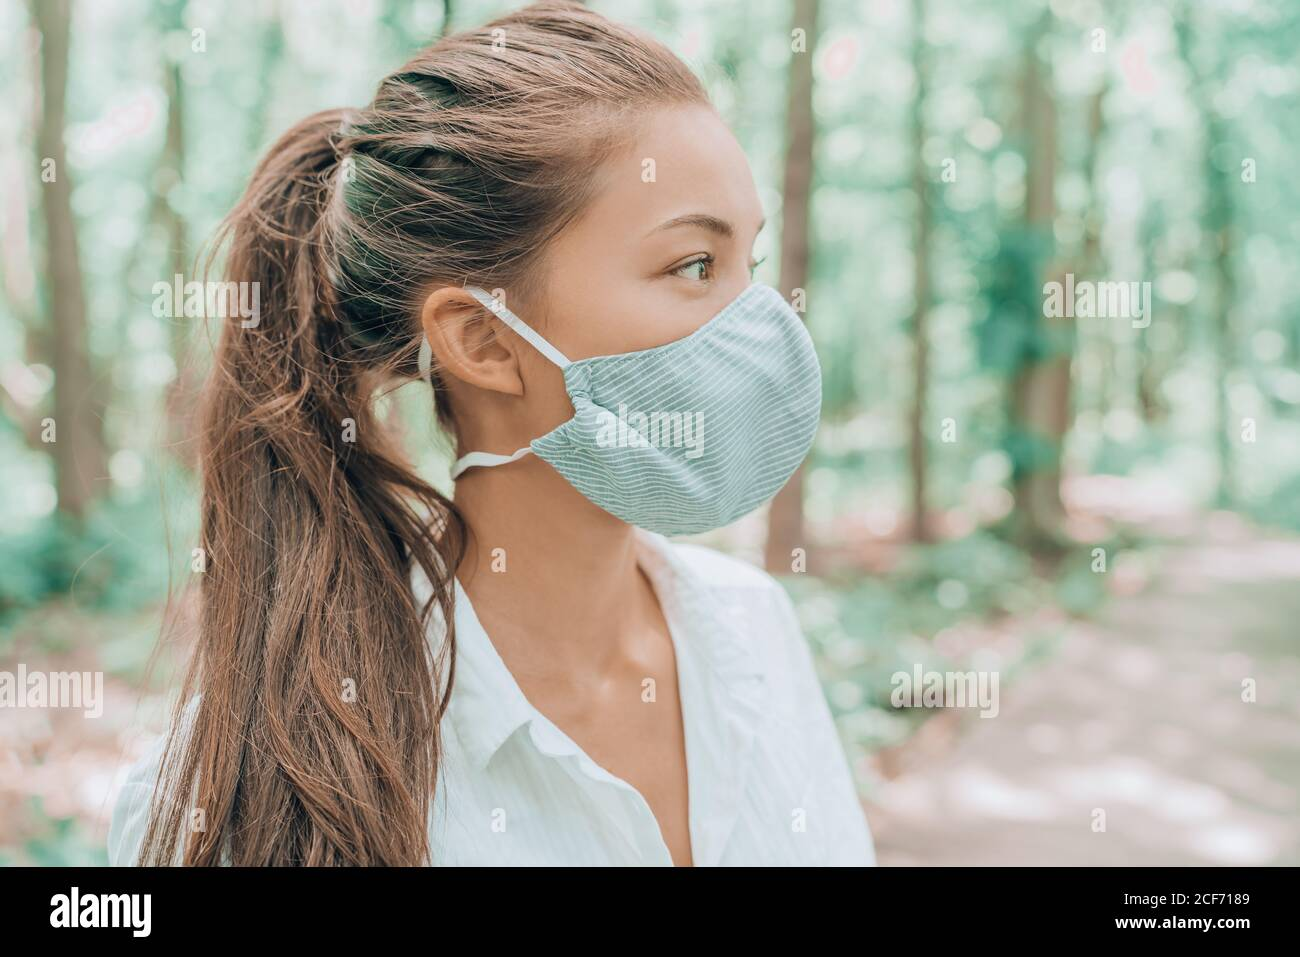 Face mask of cotton fabric are breathable for skin. Asian woman wearing corona virus mouth covering walking outdoors in woods Stock Photo